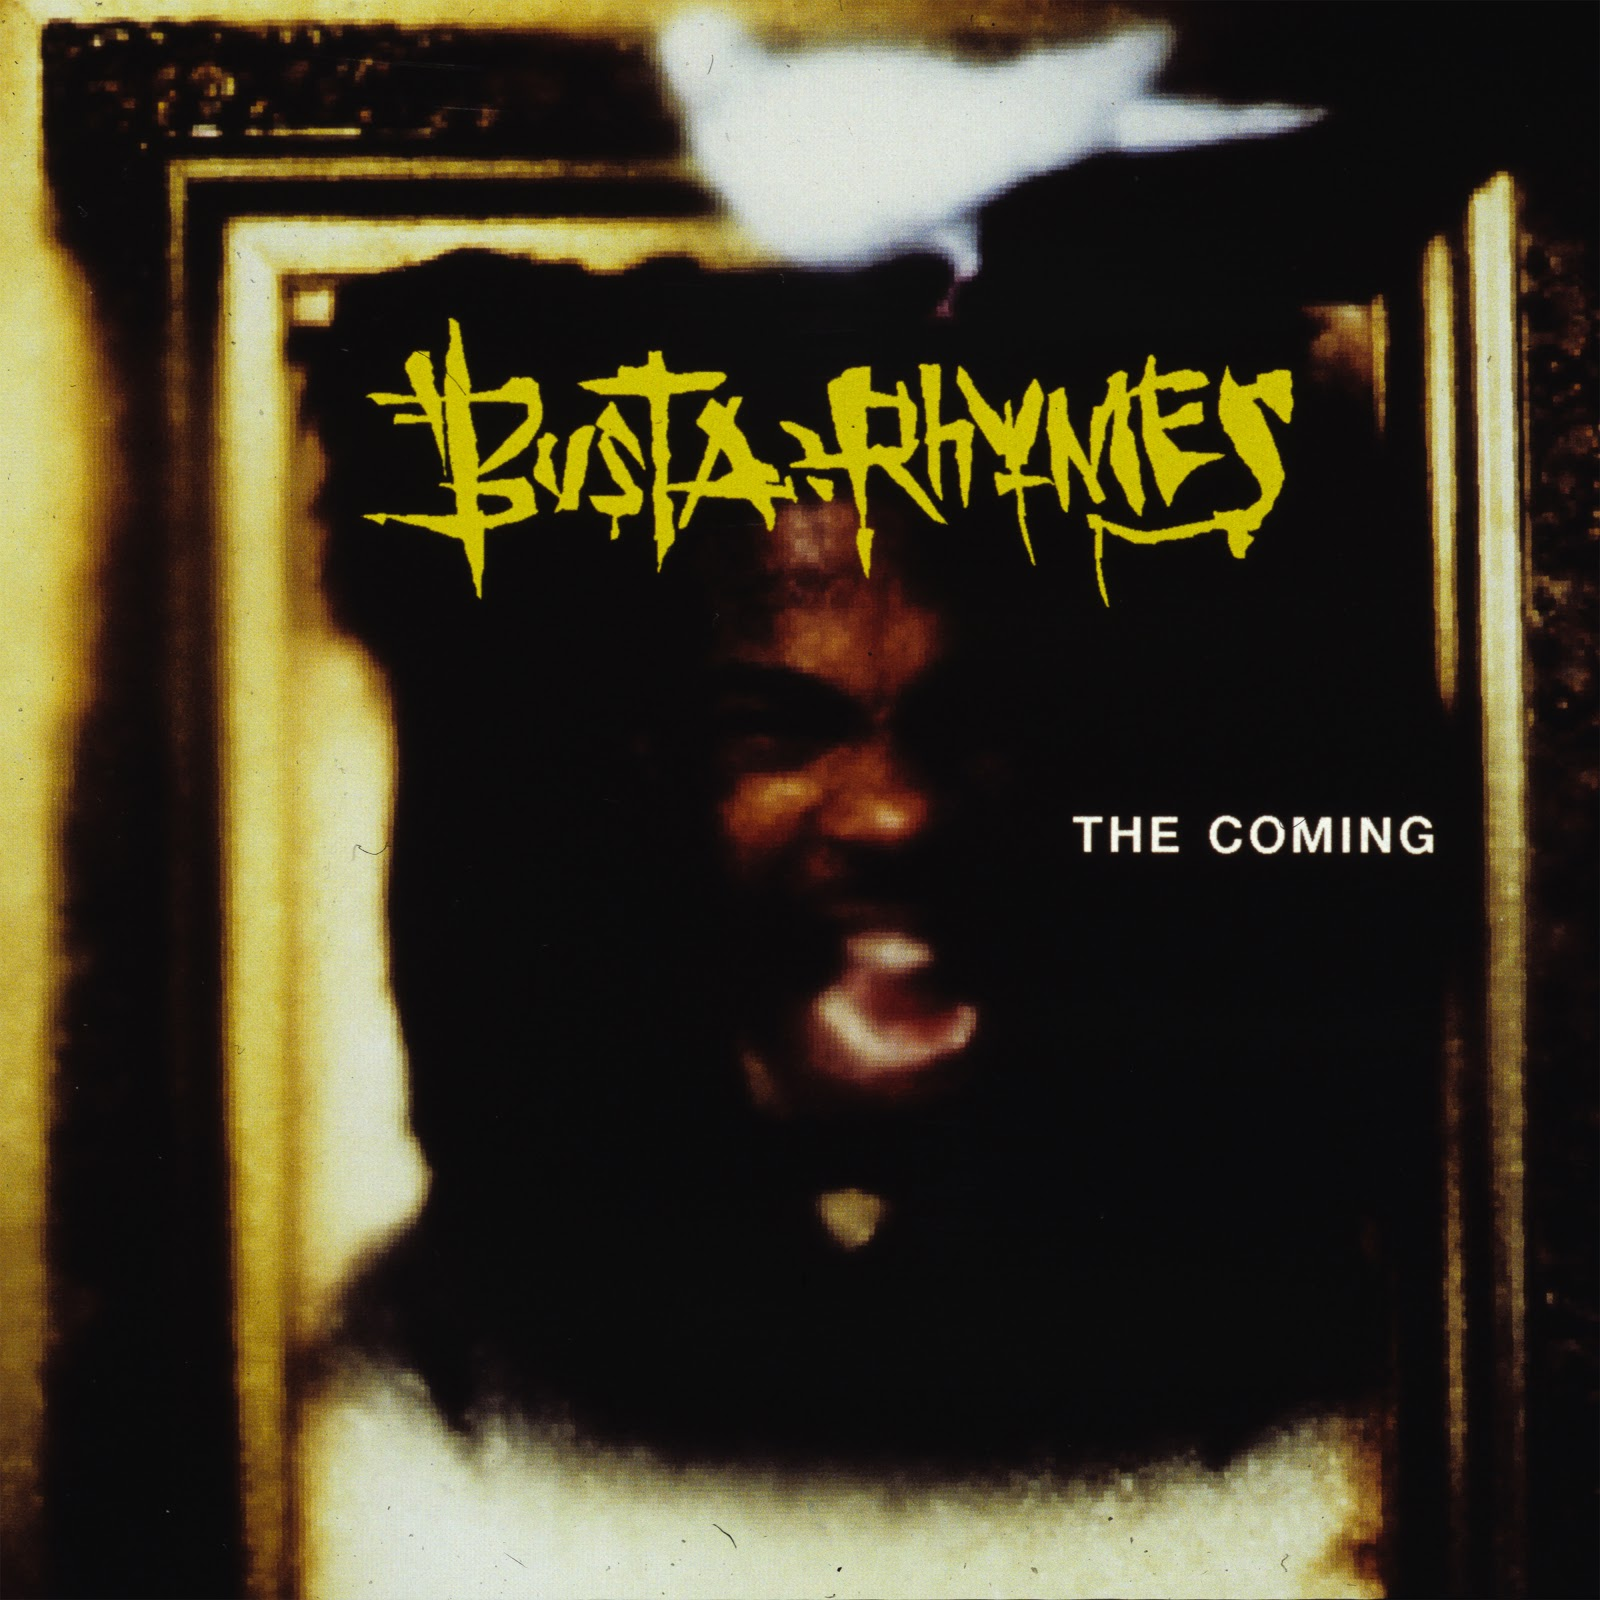 BUSTA RHYMES: THE COMING 25TH ANNIVERSARY